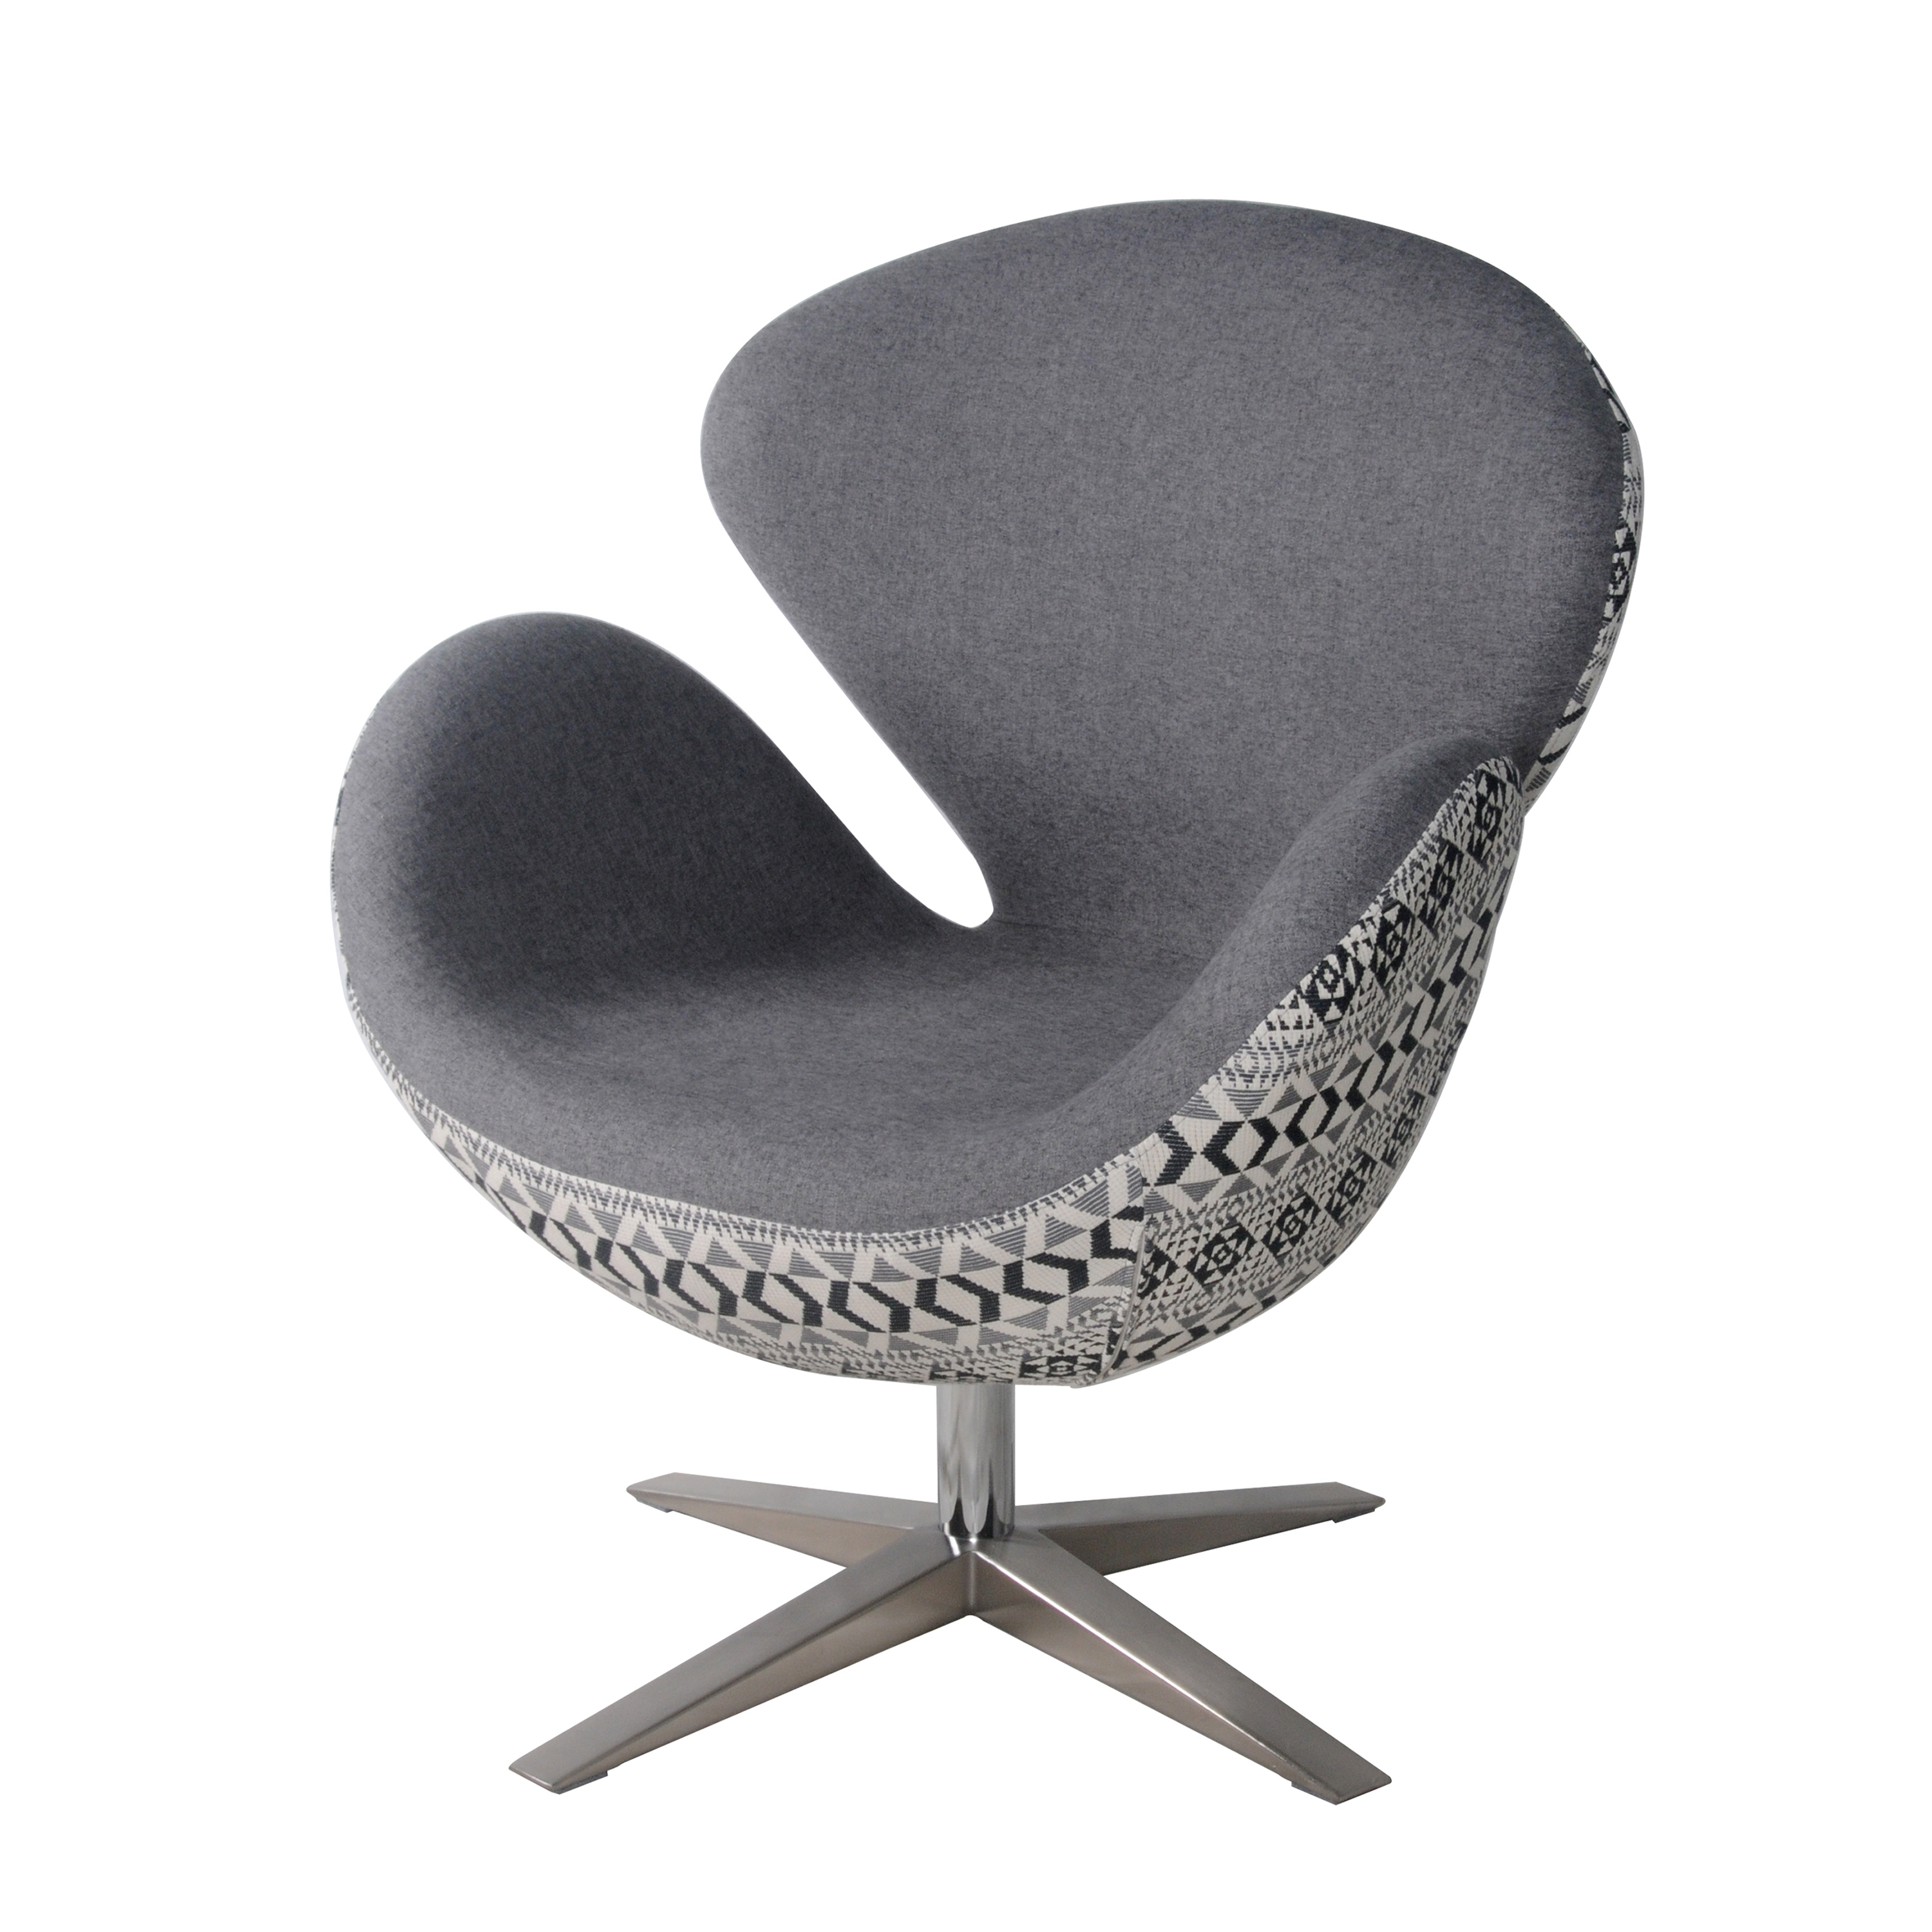 Beckett Fabric Swivel Chair Chrome Legs, Gray Shower/Diamond Art/453035 GSDA